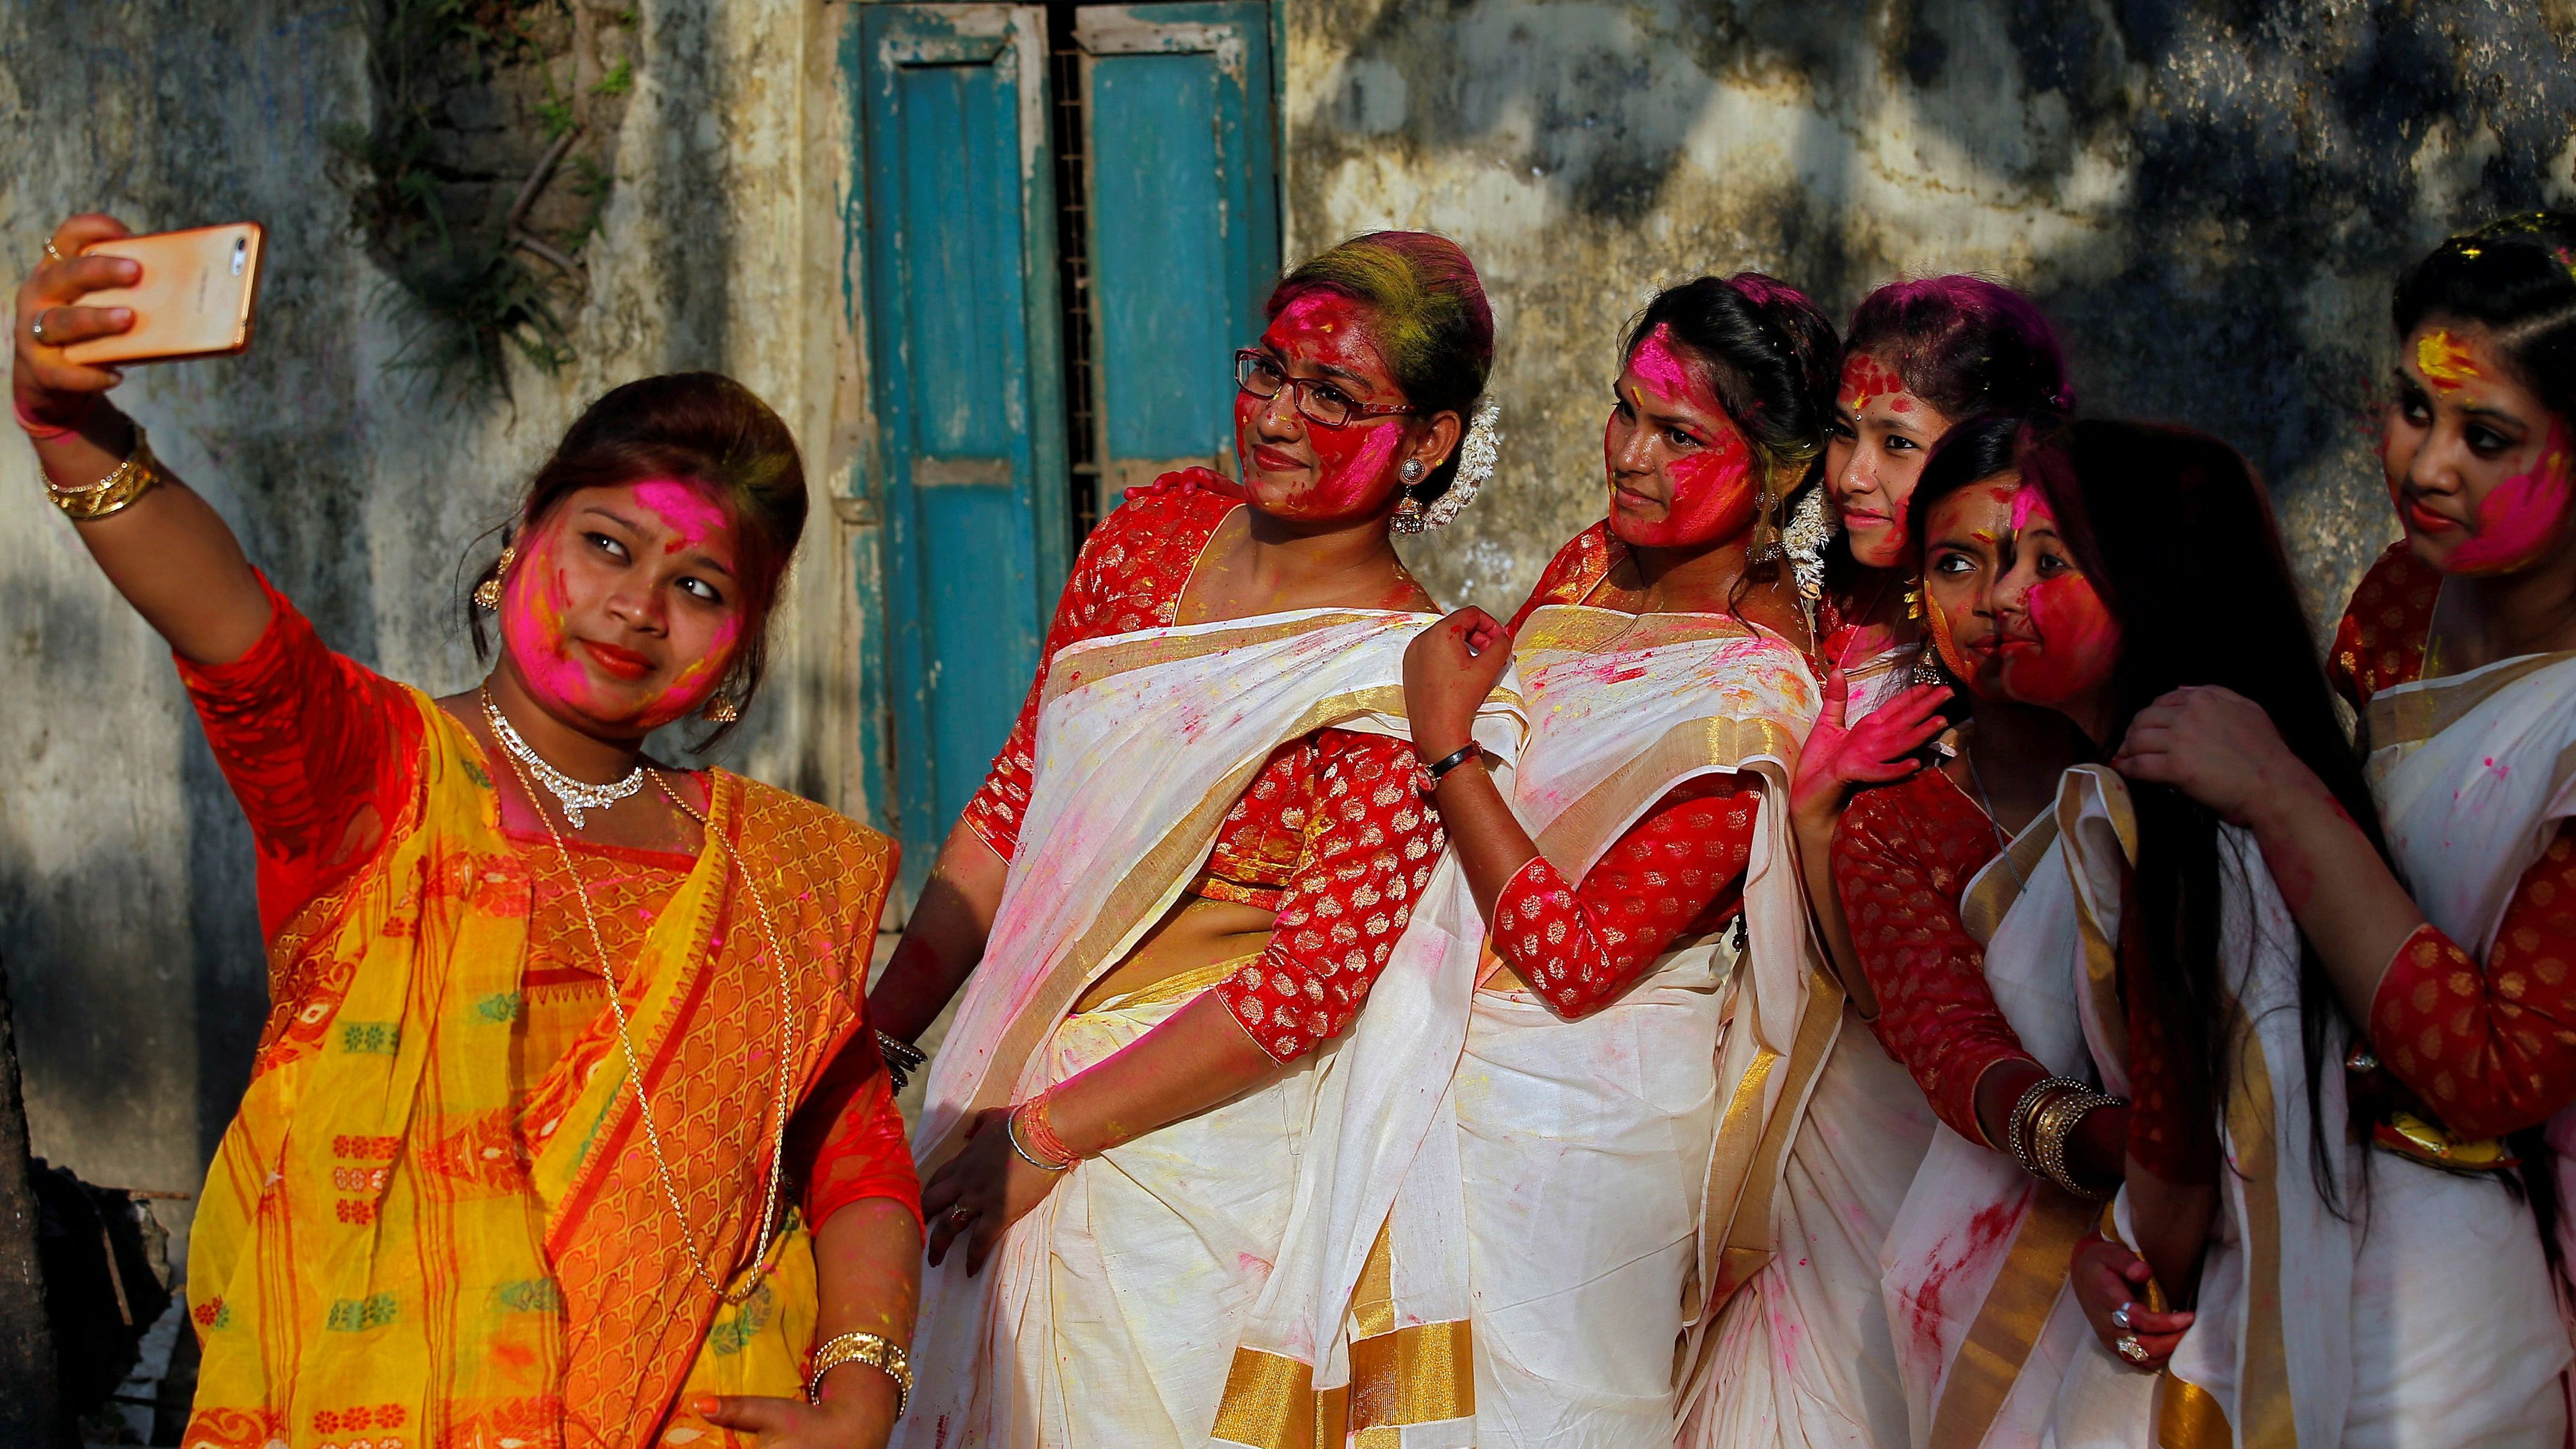 Students of Rabindra Bharati University, with their faces smeared in coloured powder, take a selfie during celebrations for Holi inside the university campus in Kolkata